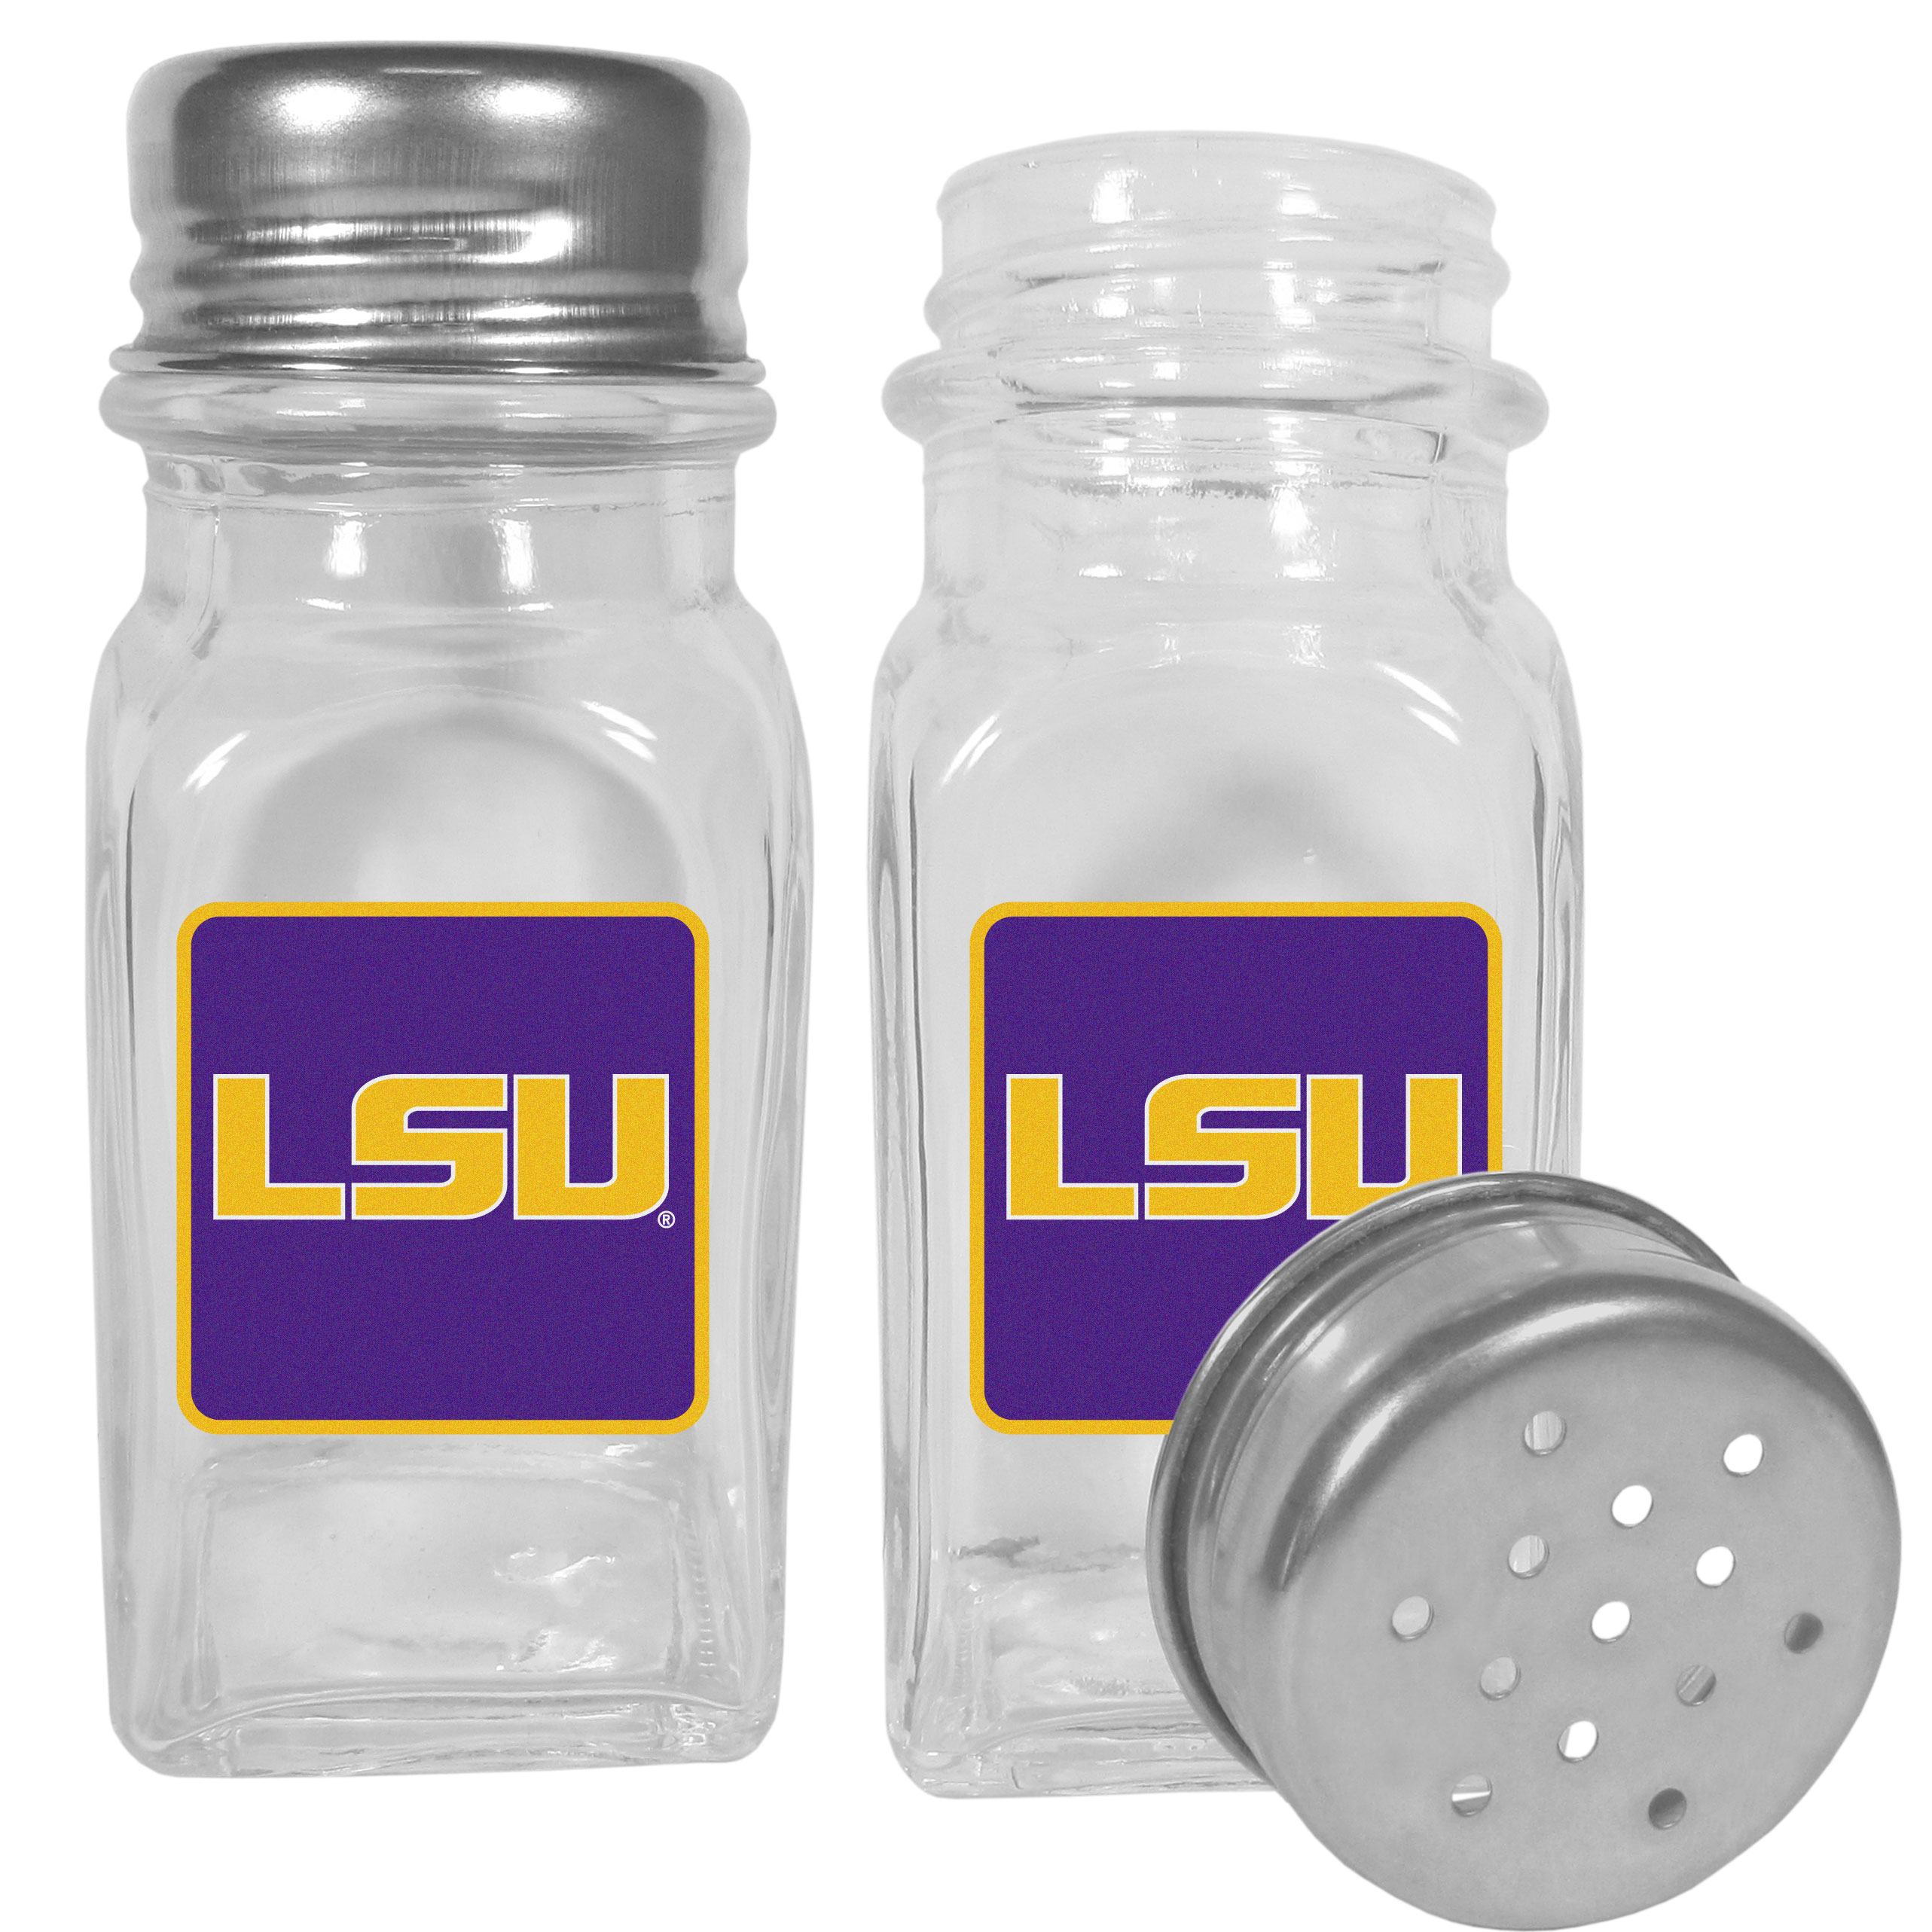 LSU Tigers Graphics Salt and Pepper Shaker - No tailgate party is complete without your LSU Tigers salt & pepper shakers featuring bright team logos. The diner replica salt and pepper shakers are glass with screw top lids. These team shakers are a great grill accessory whether you are barbecuing on the patio, picnicing or having a game day party.